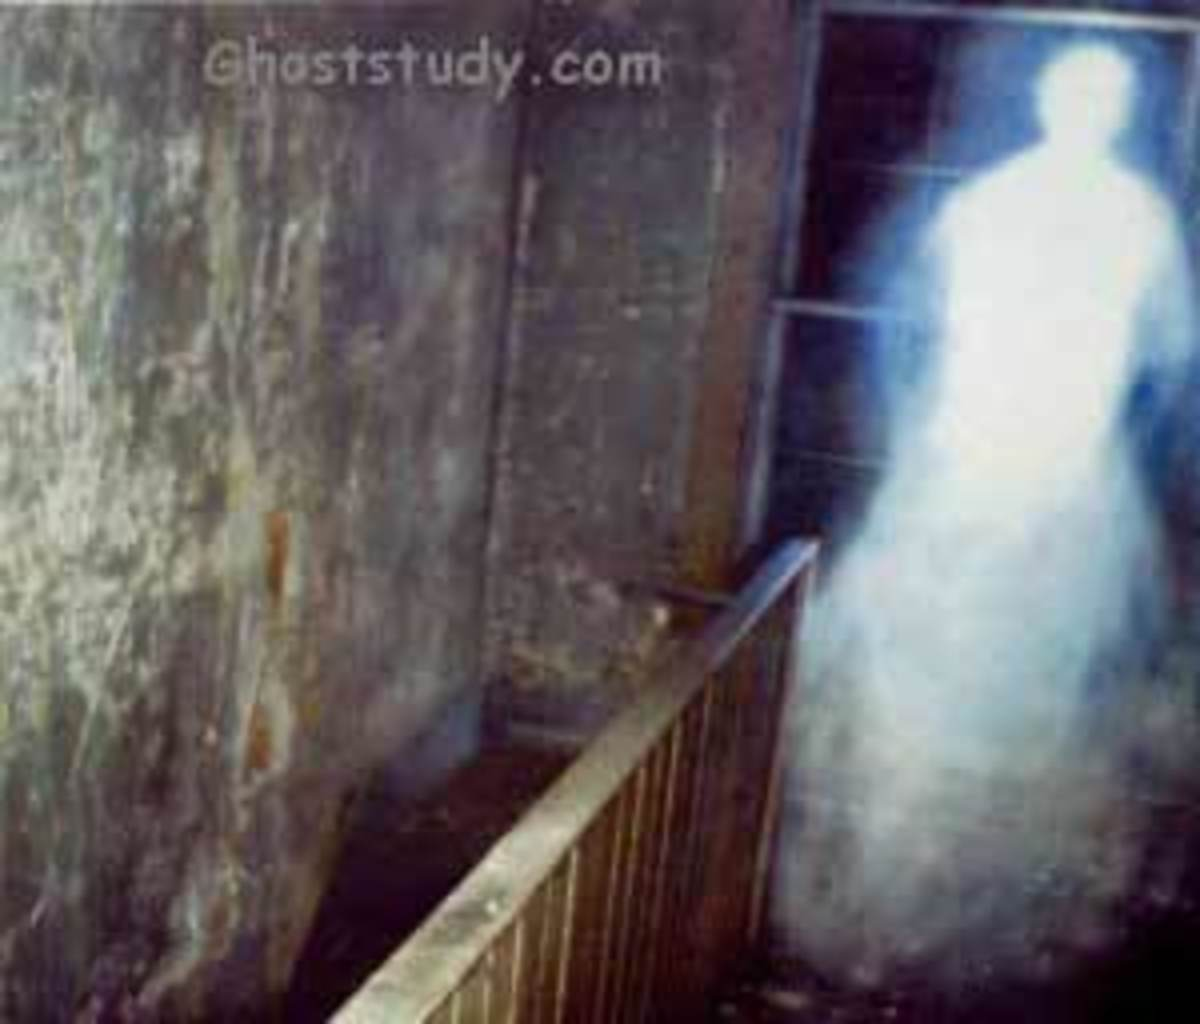 How to create paranormal website, from free templates to wordpress management